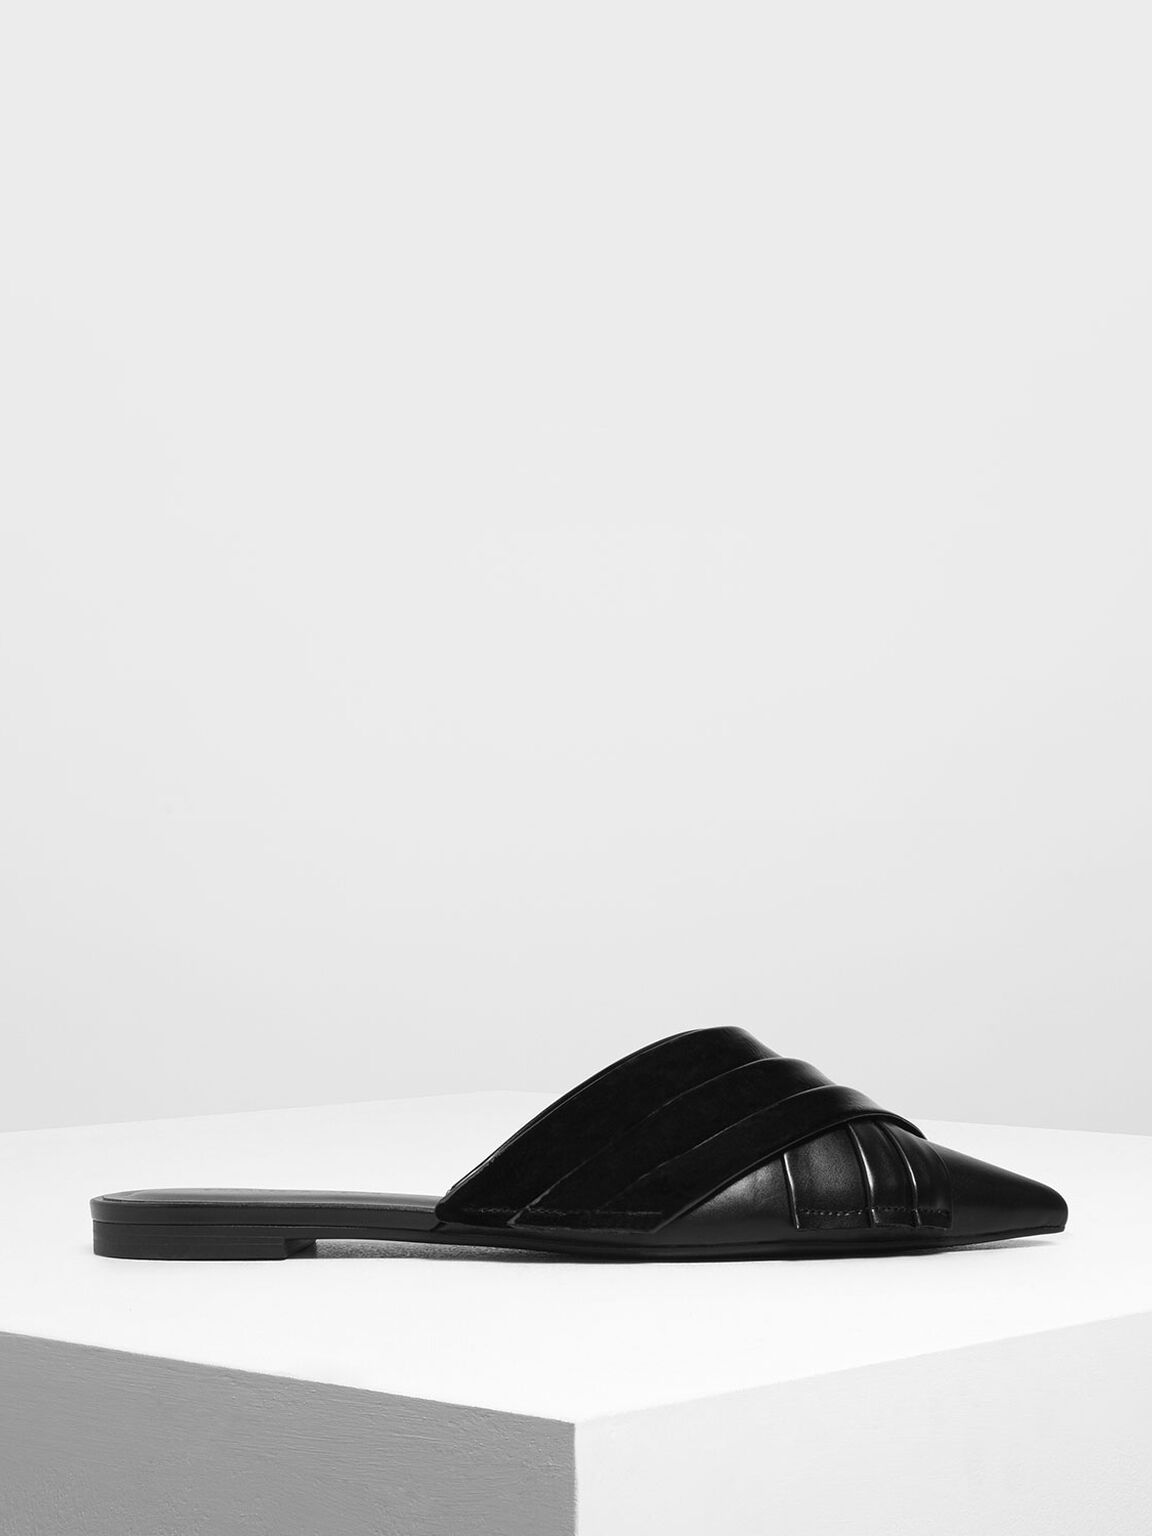 Pleated Wrinkled Patent Flat Mules, Black, hi-res